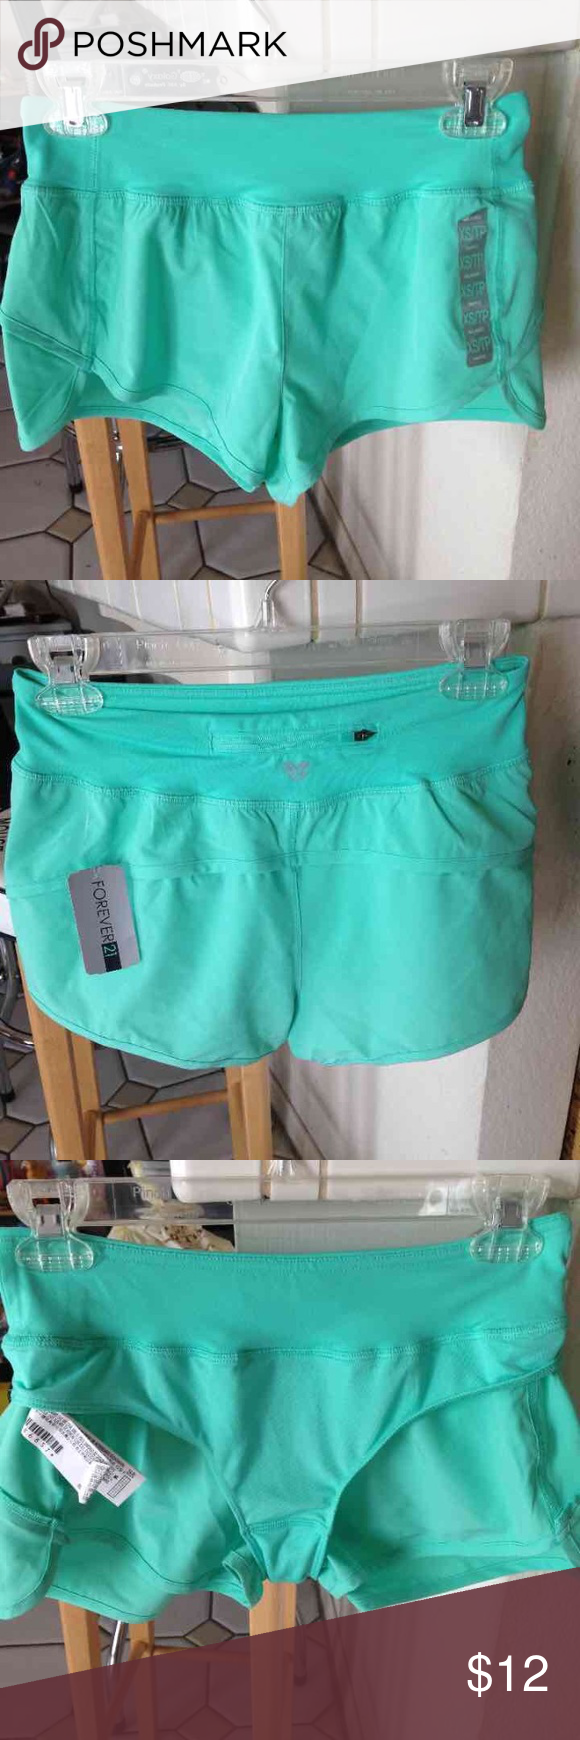 Teal Aqua Speed Shorts Size XS, fit true to size. These have been worn once! The tags were taken off. There is a small spot on the front the seller did not warn me about, it's not noticeable but just letting you know about it. 😊 Forever 21 Shorts